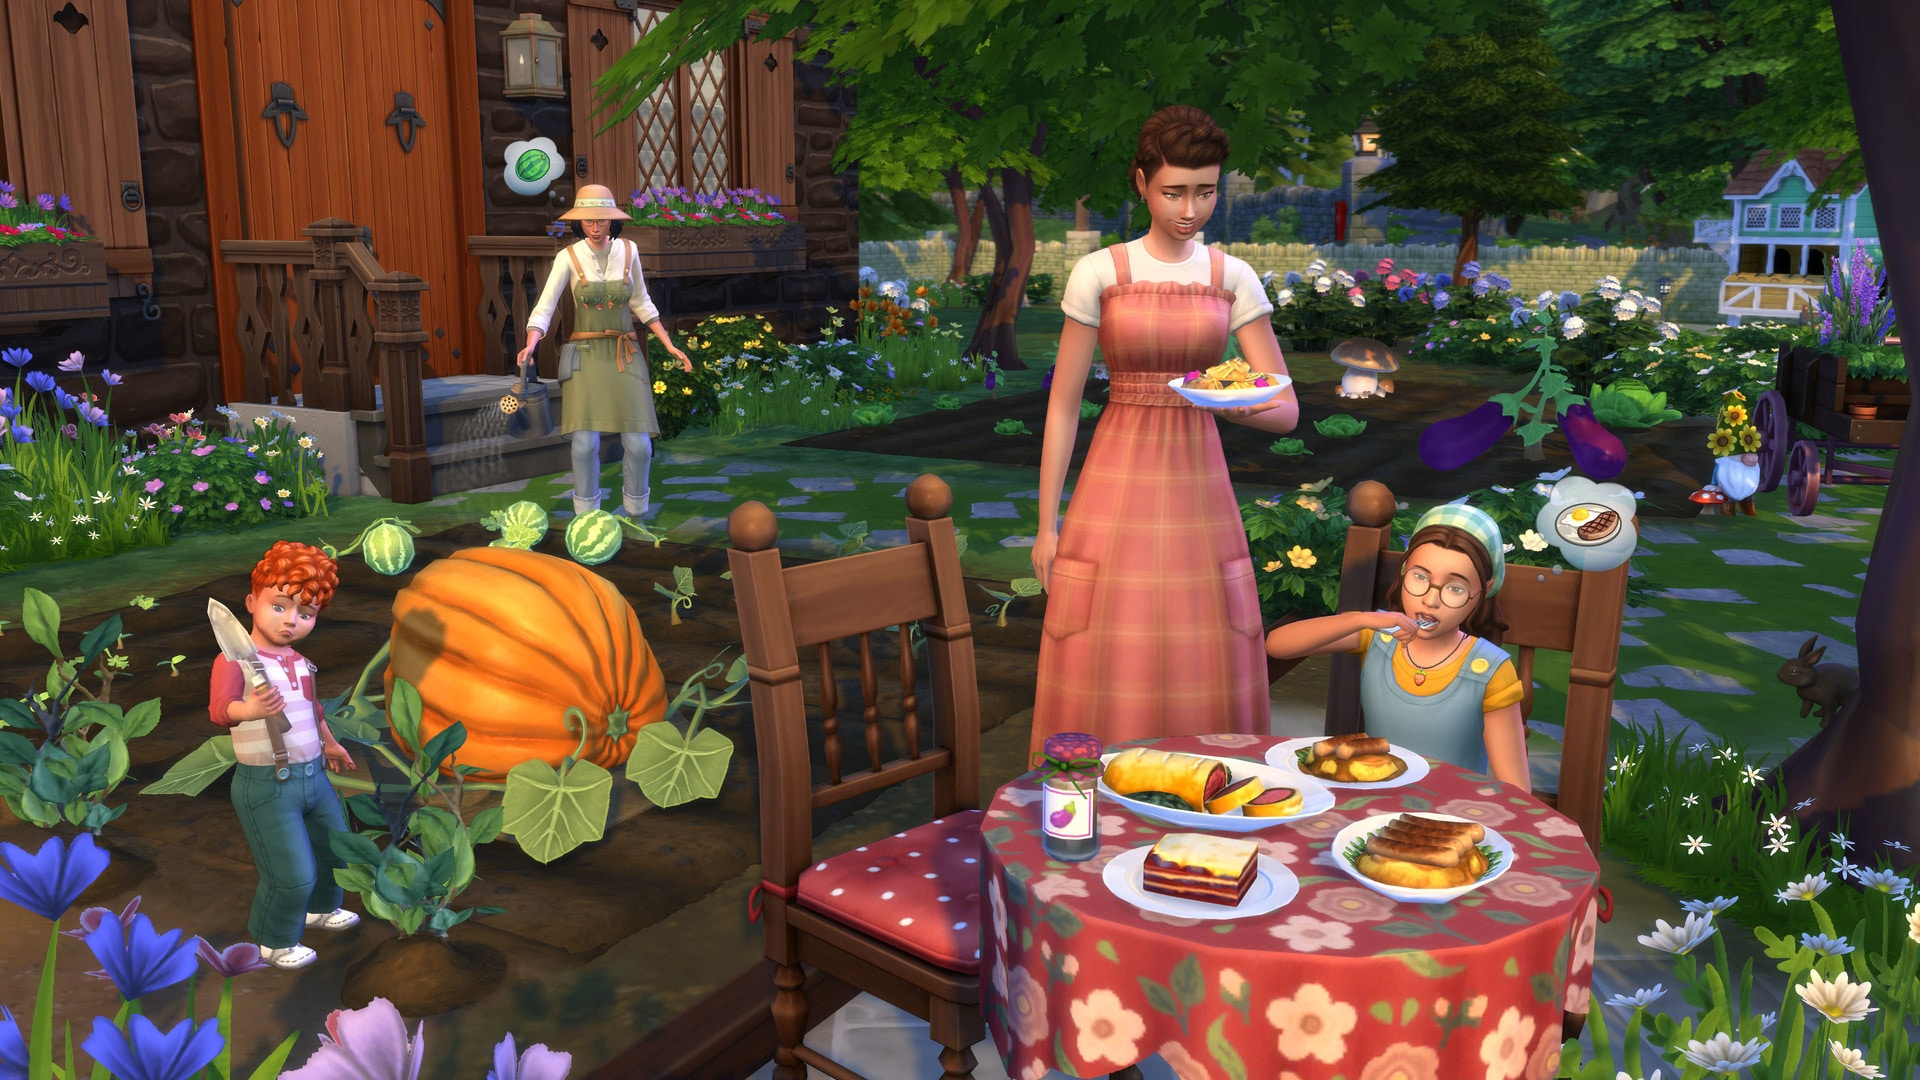 The Sims 4 Cottage Living Expansion Pack (PC) - Origin Key - GLOBAL - 4